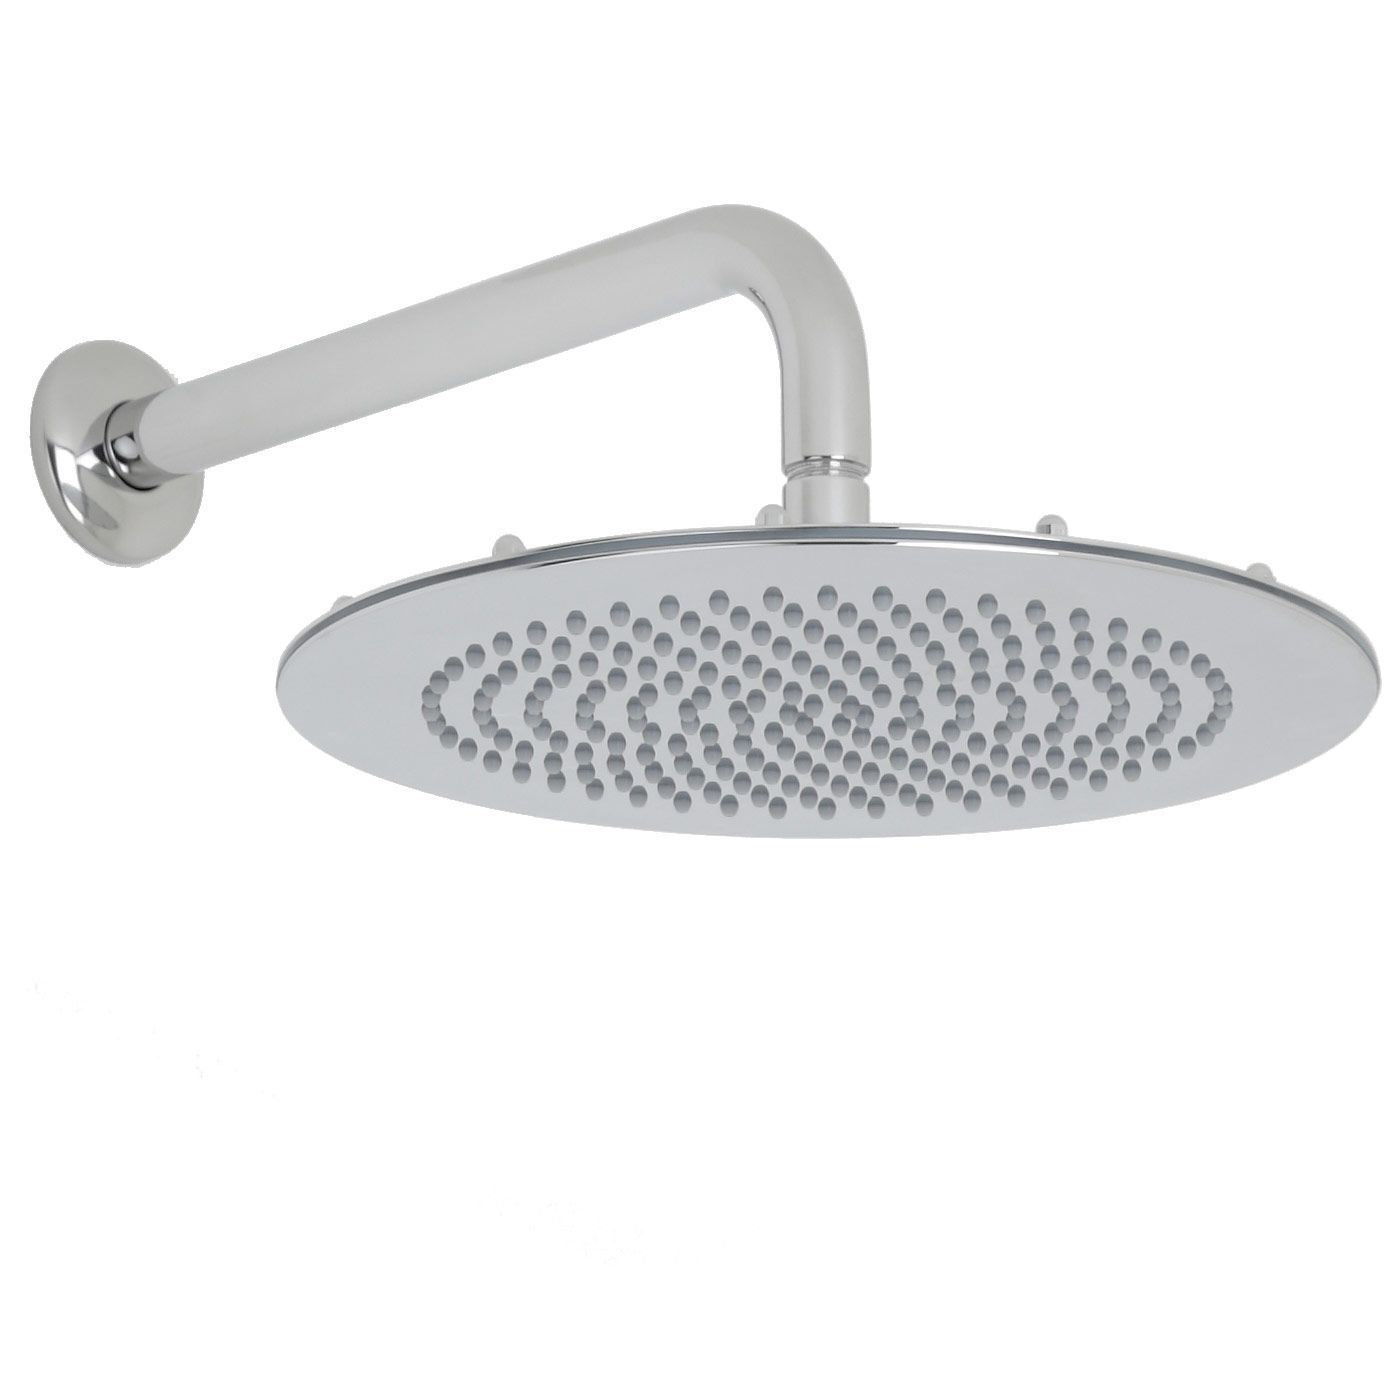 "Valquest 12"" Round Thin Shower Head with Wall Arm"